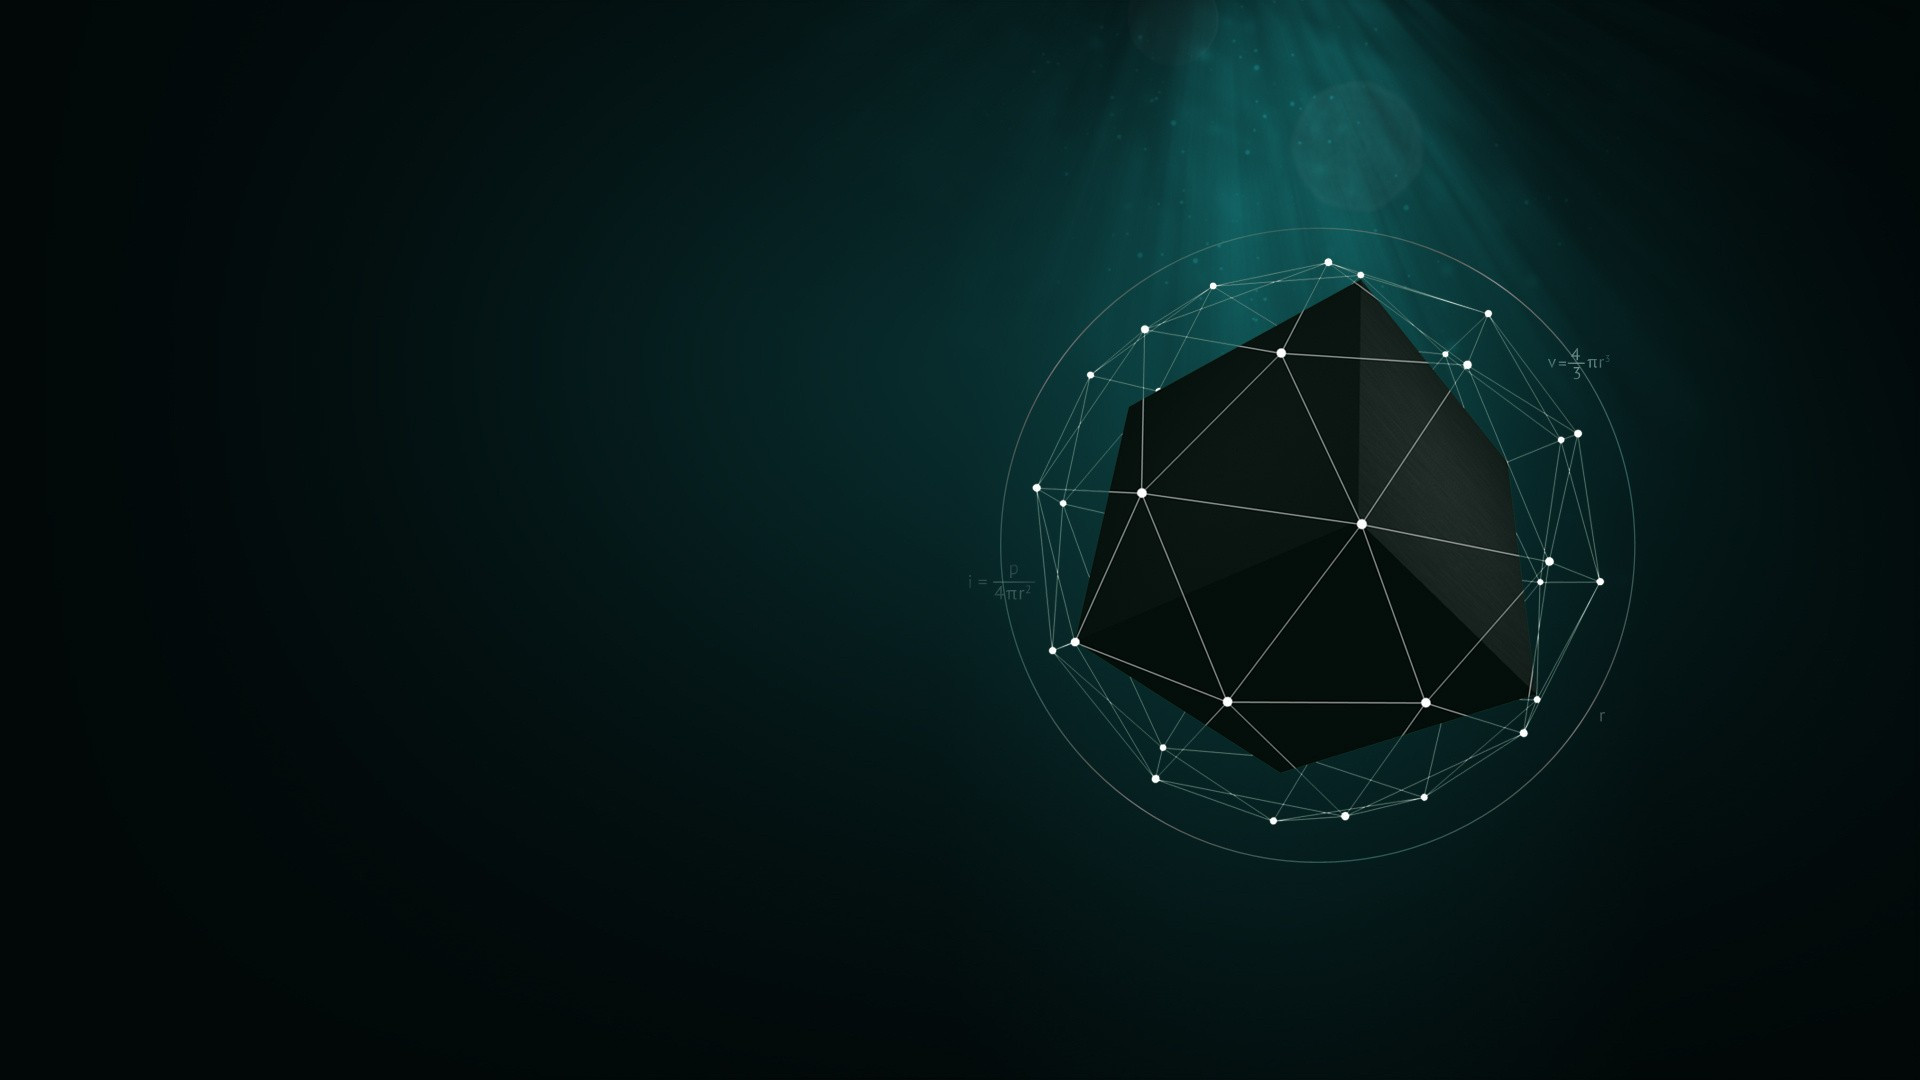 HD Geometric Wallpapers and Photos